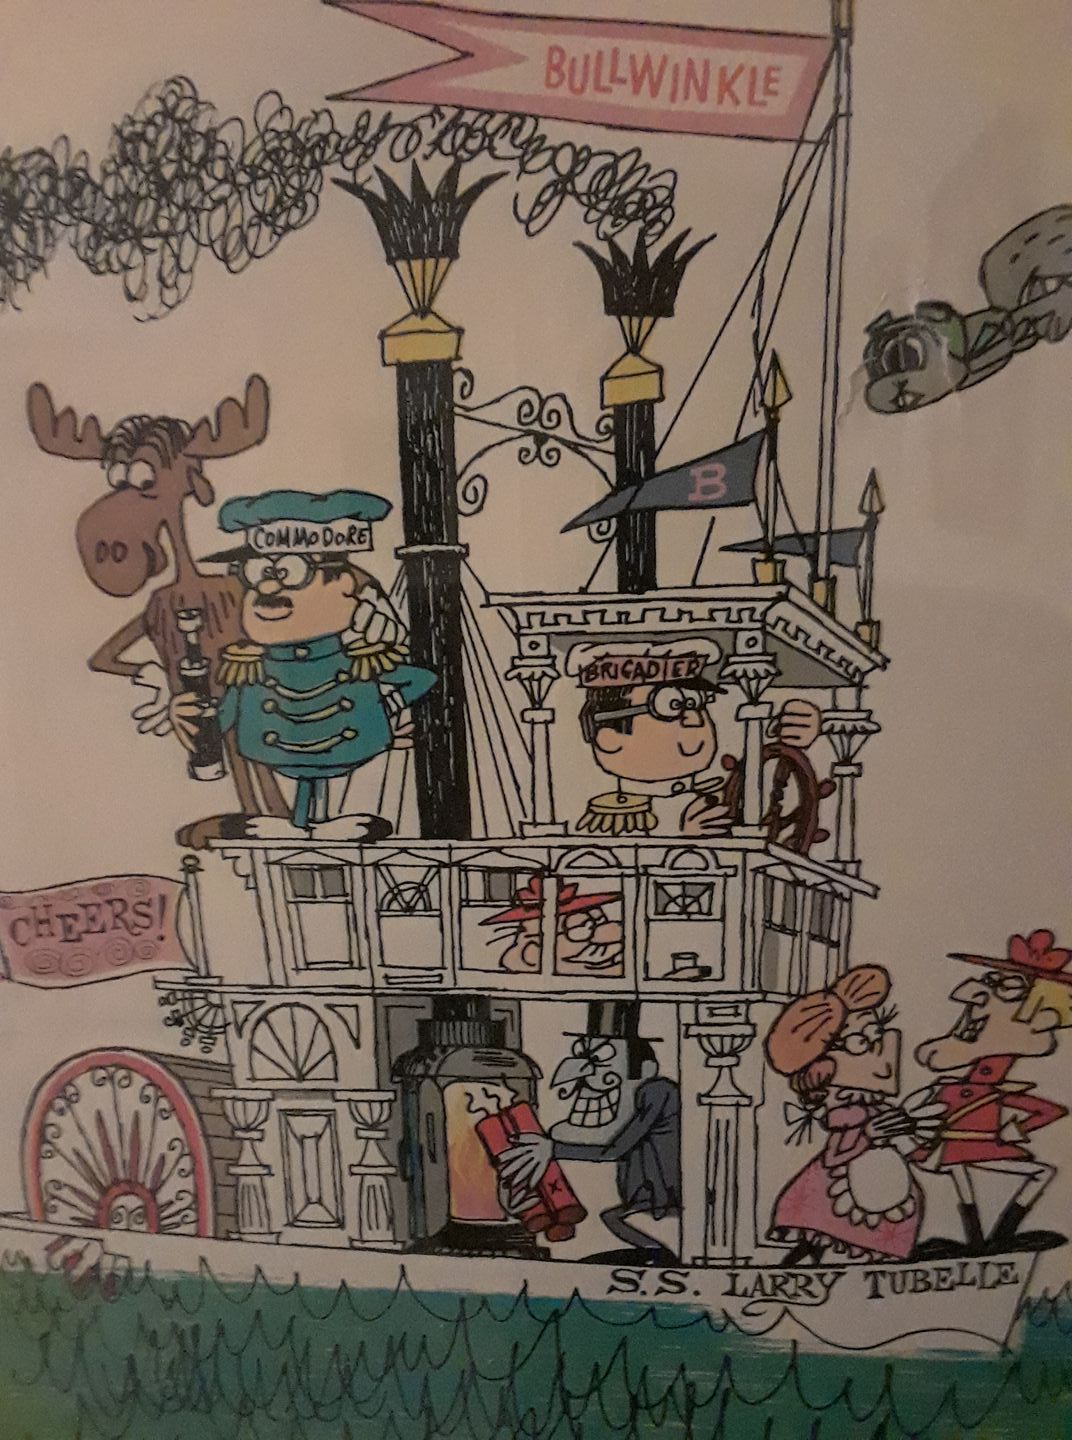 Larry Tubelle Bullwinkle painting